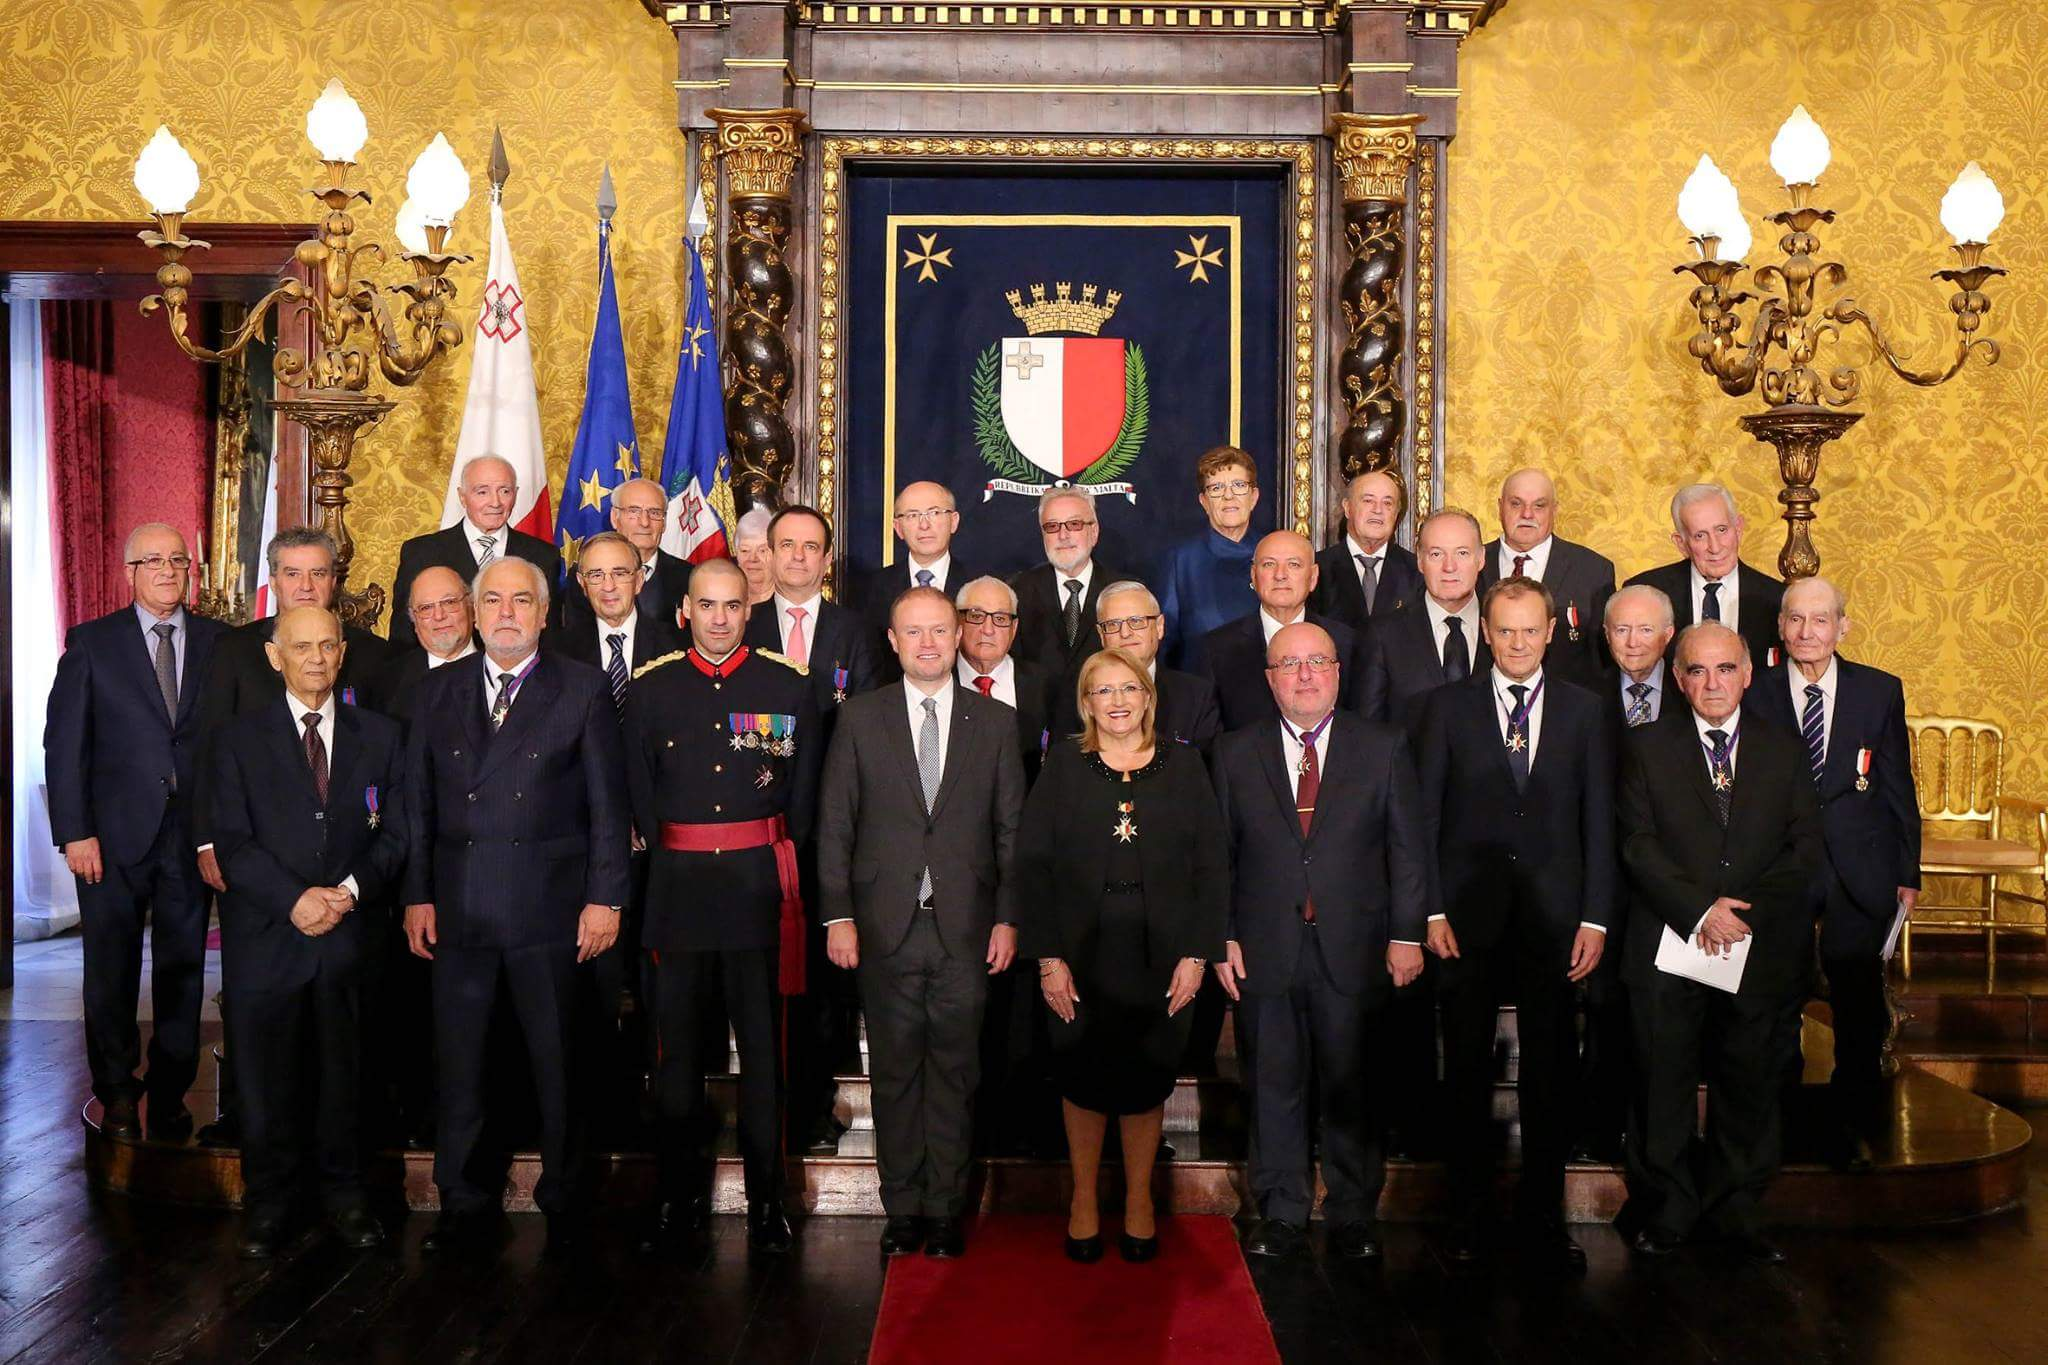 the-chairman-of-the-bulgarian-association-of-the-honorary-consuls-borislav-boyanov-along-with-the-eu-council-president-donald-tusk-was-awarded-by-malta-to-mark-republic-day